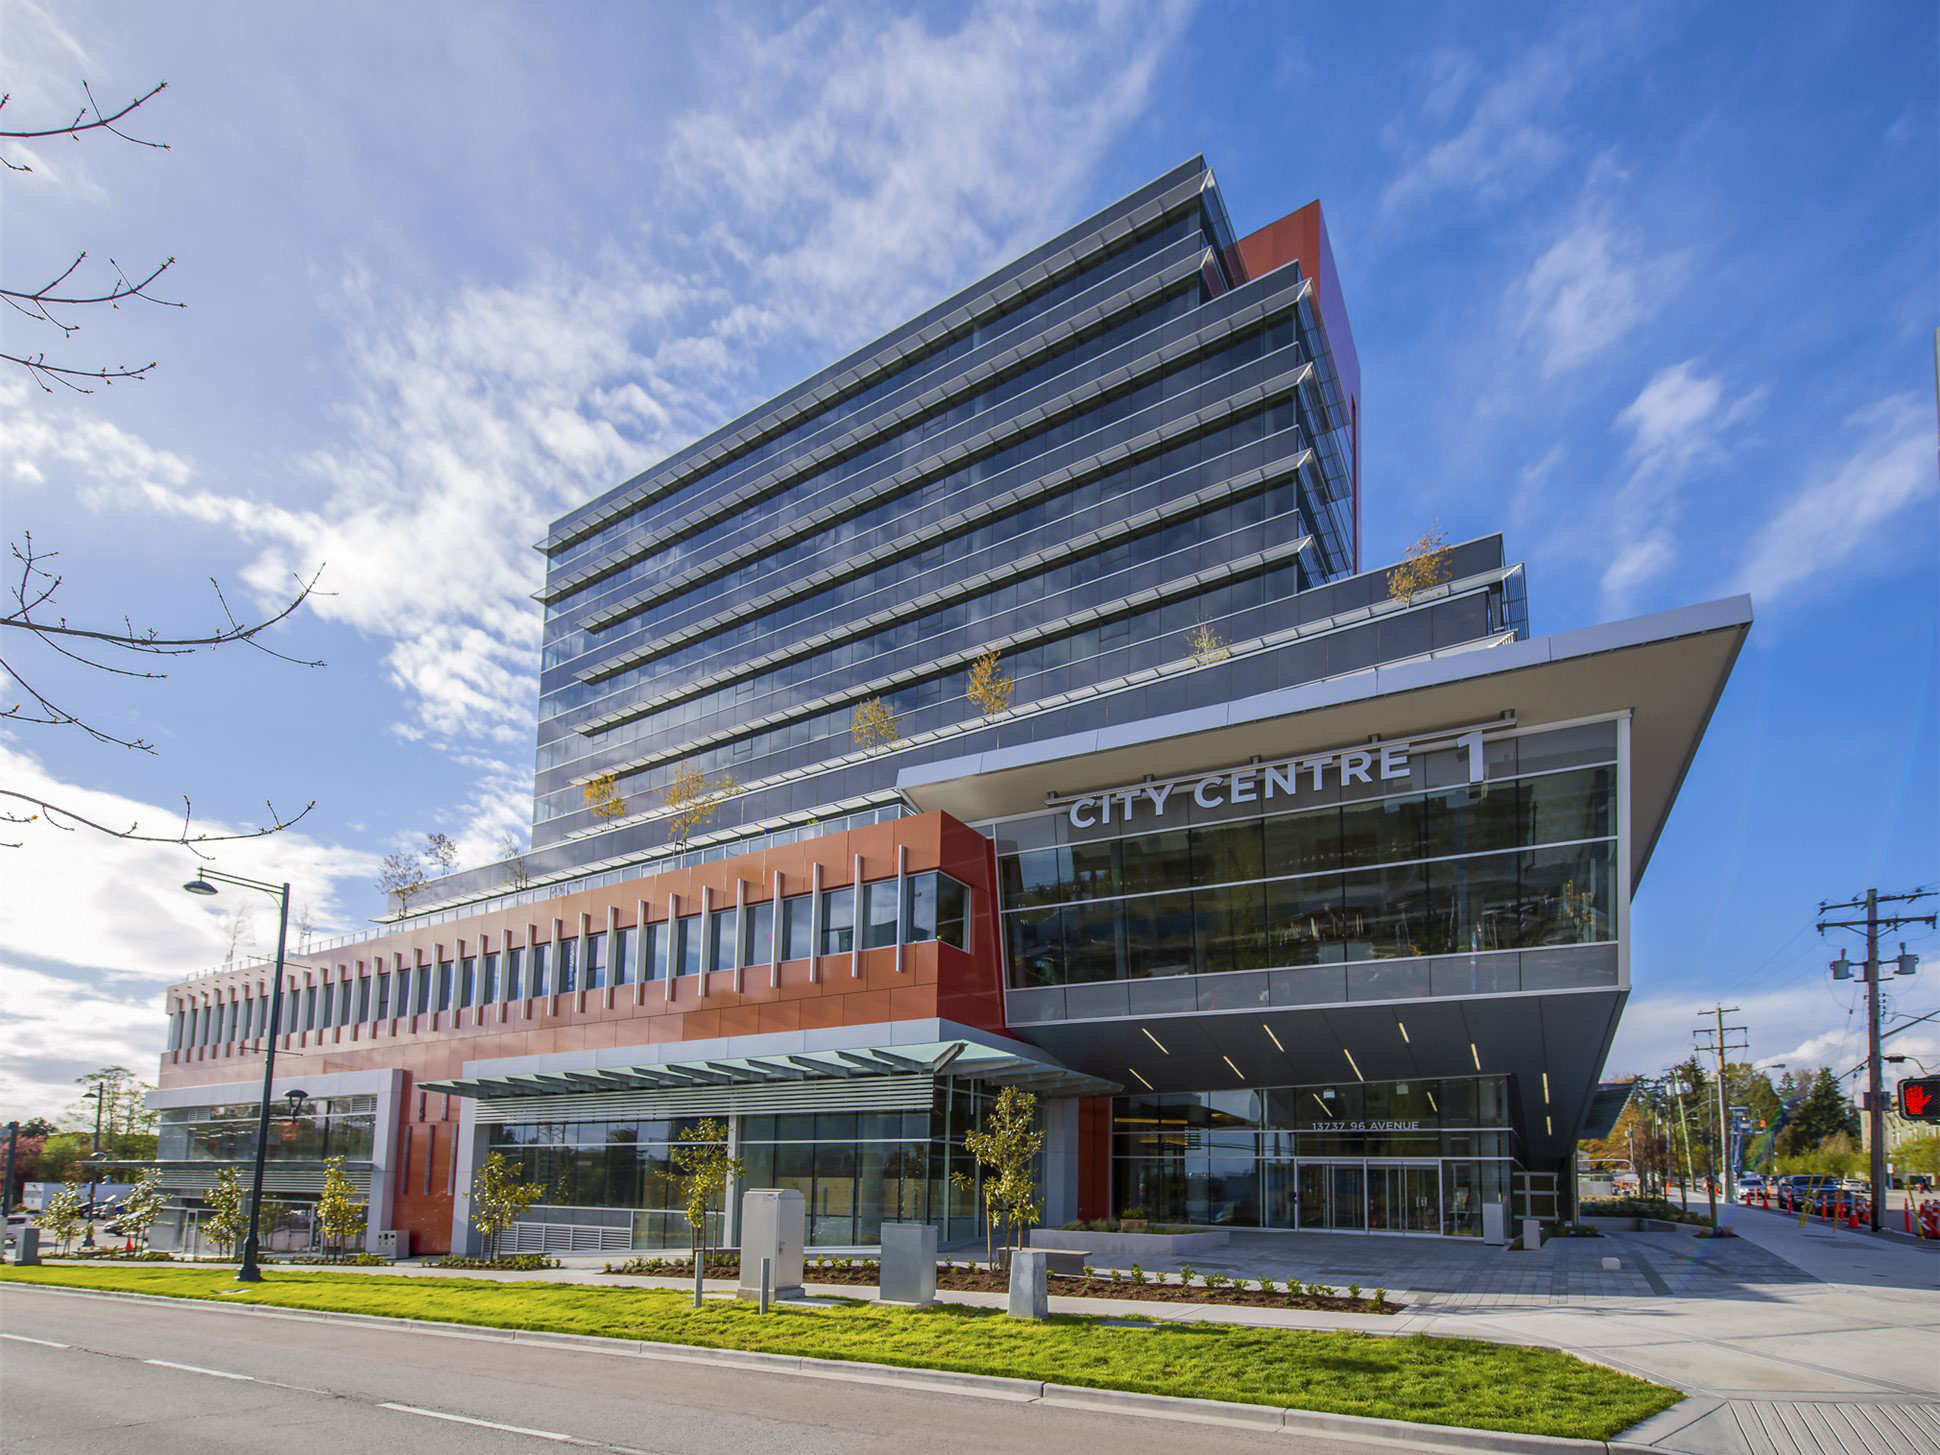 City Centre 1, CC1, Surrey, BC, Wensley Architecture, Keith Panel, Alucobond Spectra Cupral, Photography Howard Waisman